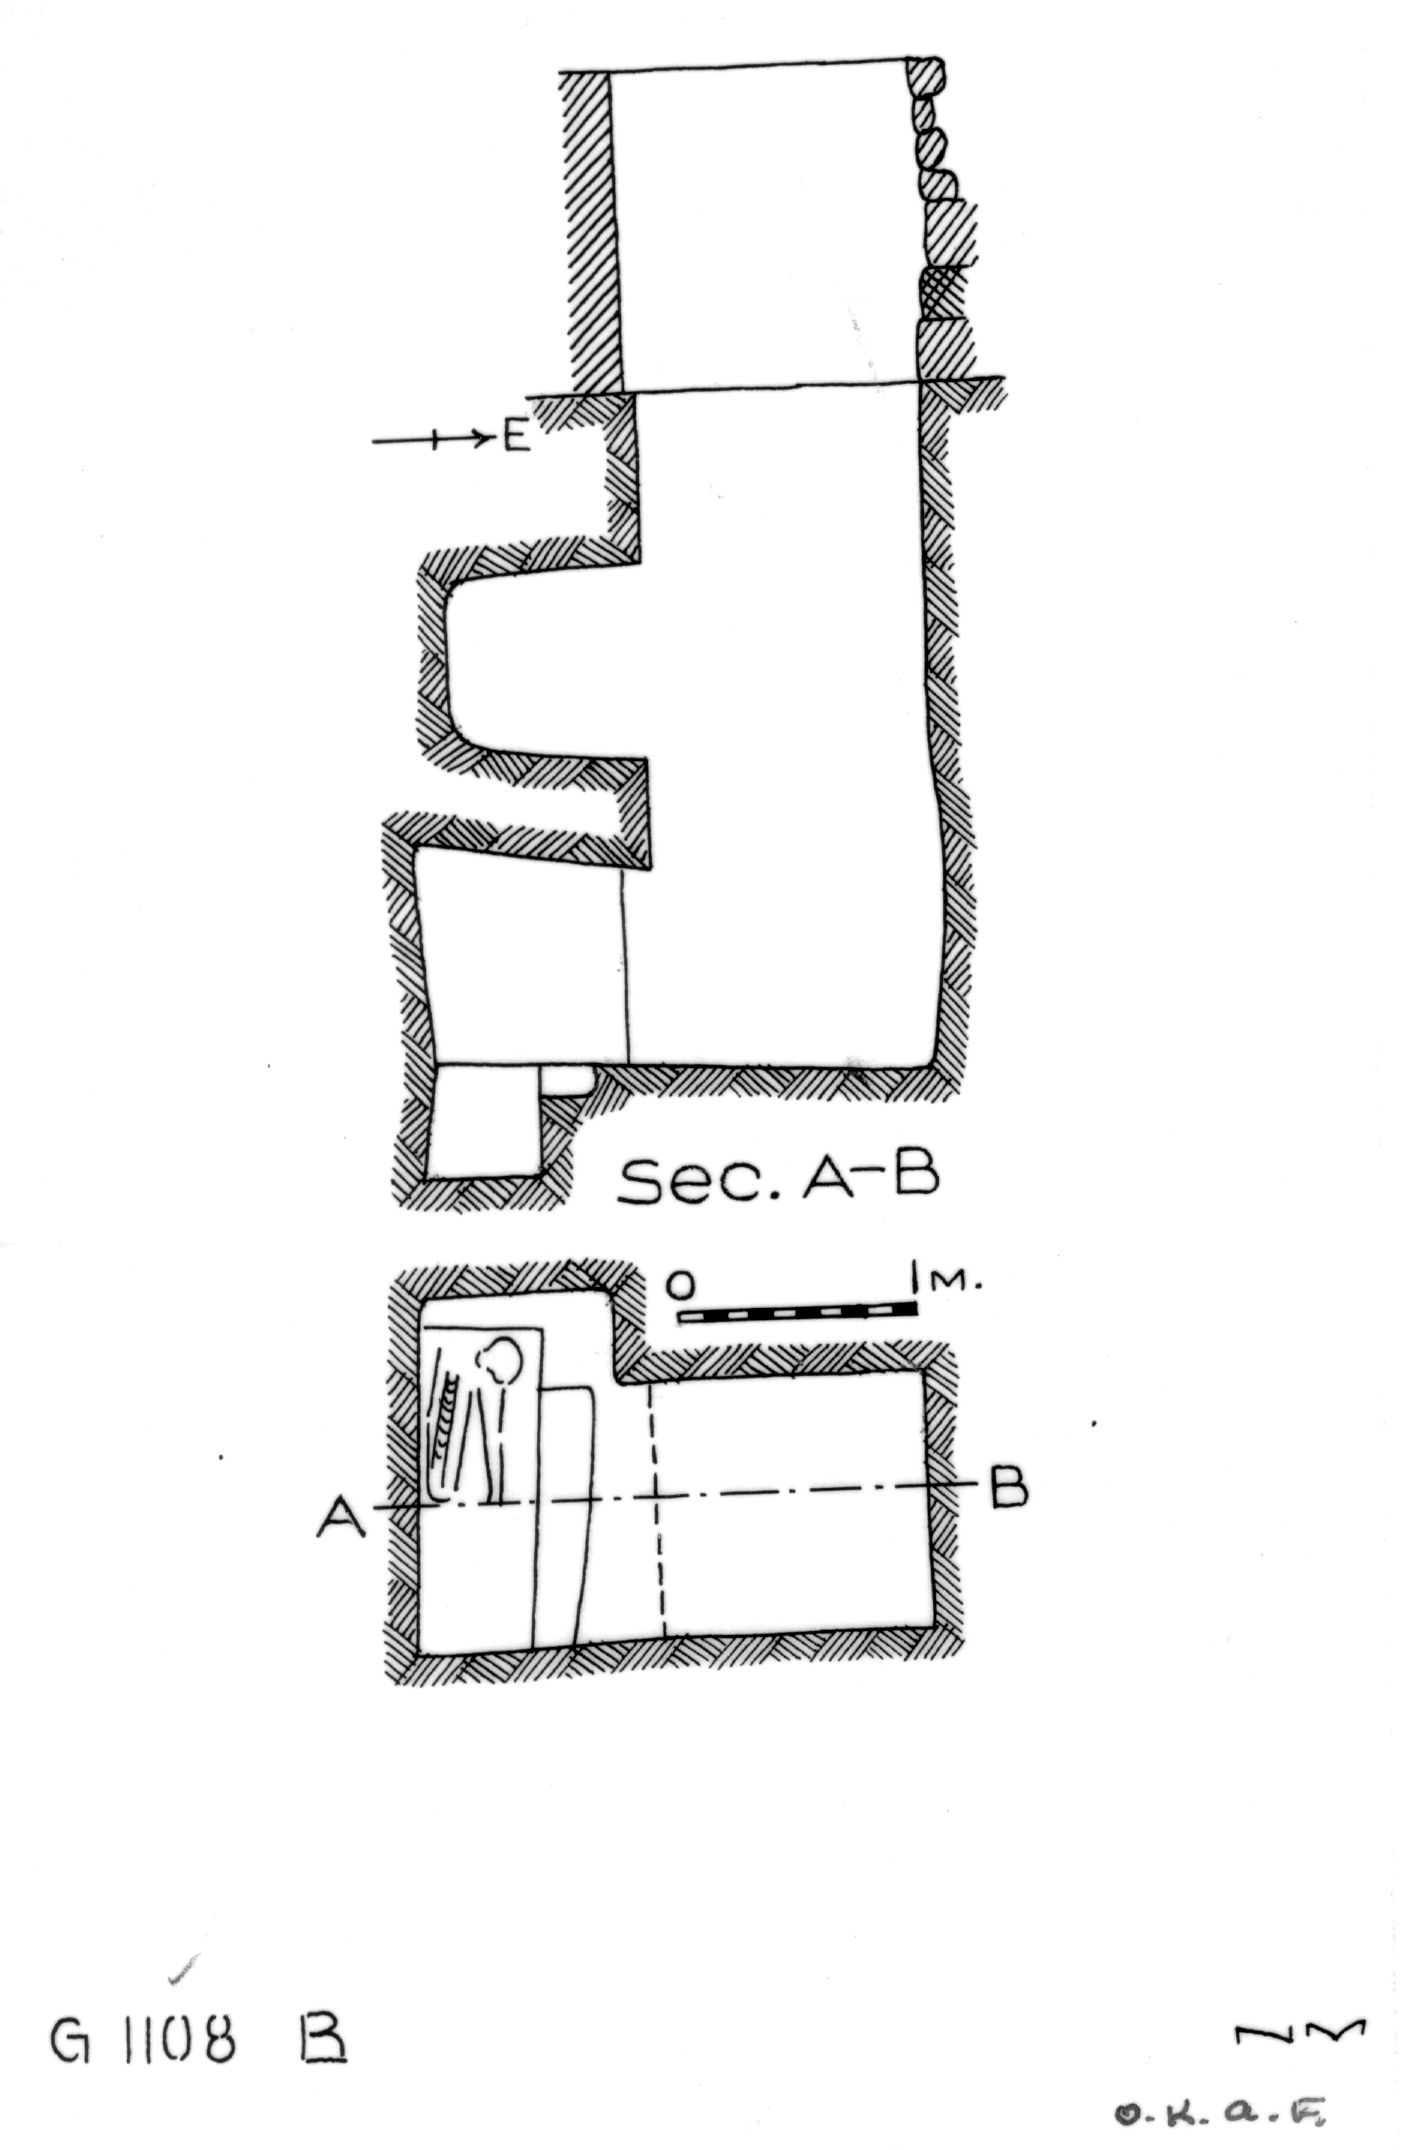 Maps and plans: G 1108, Shaft B